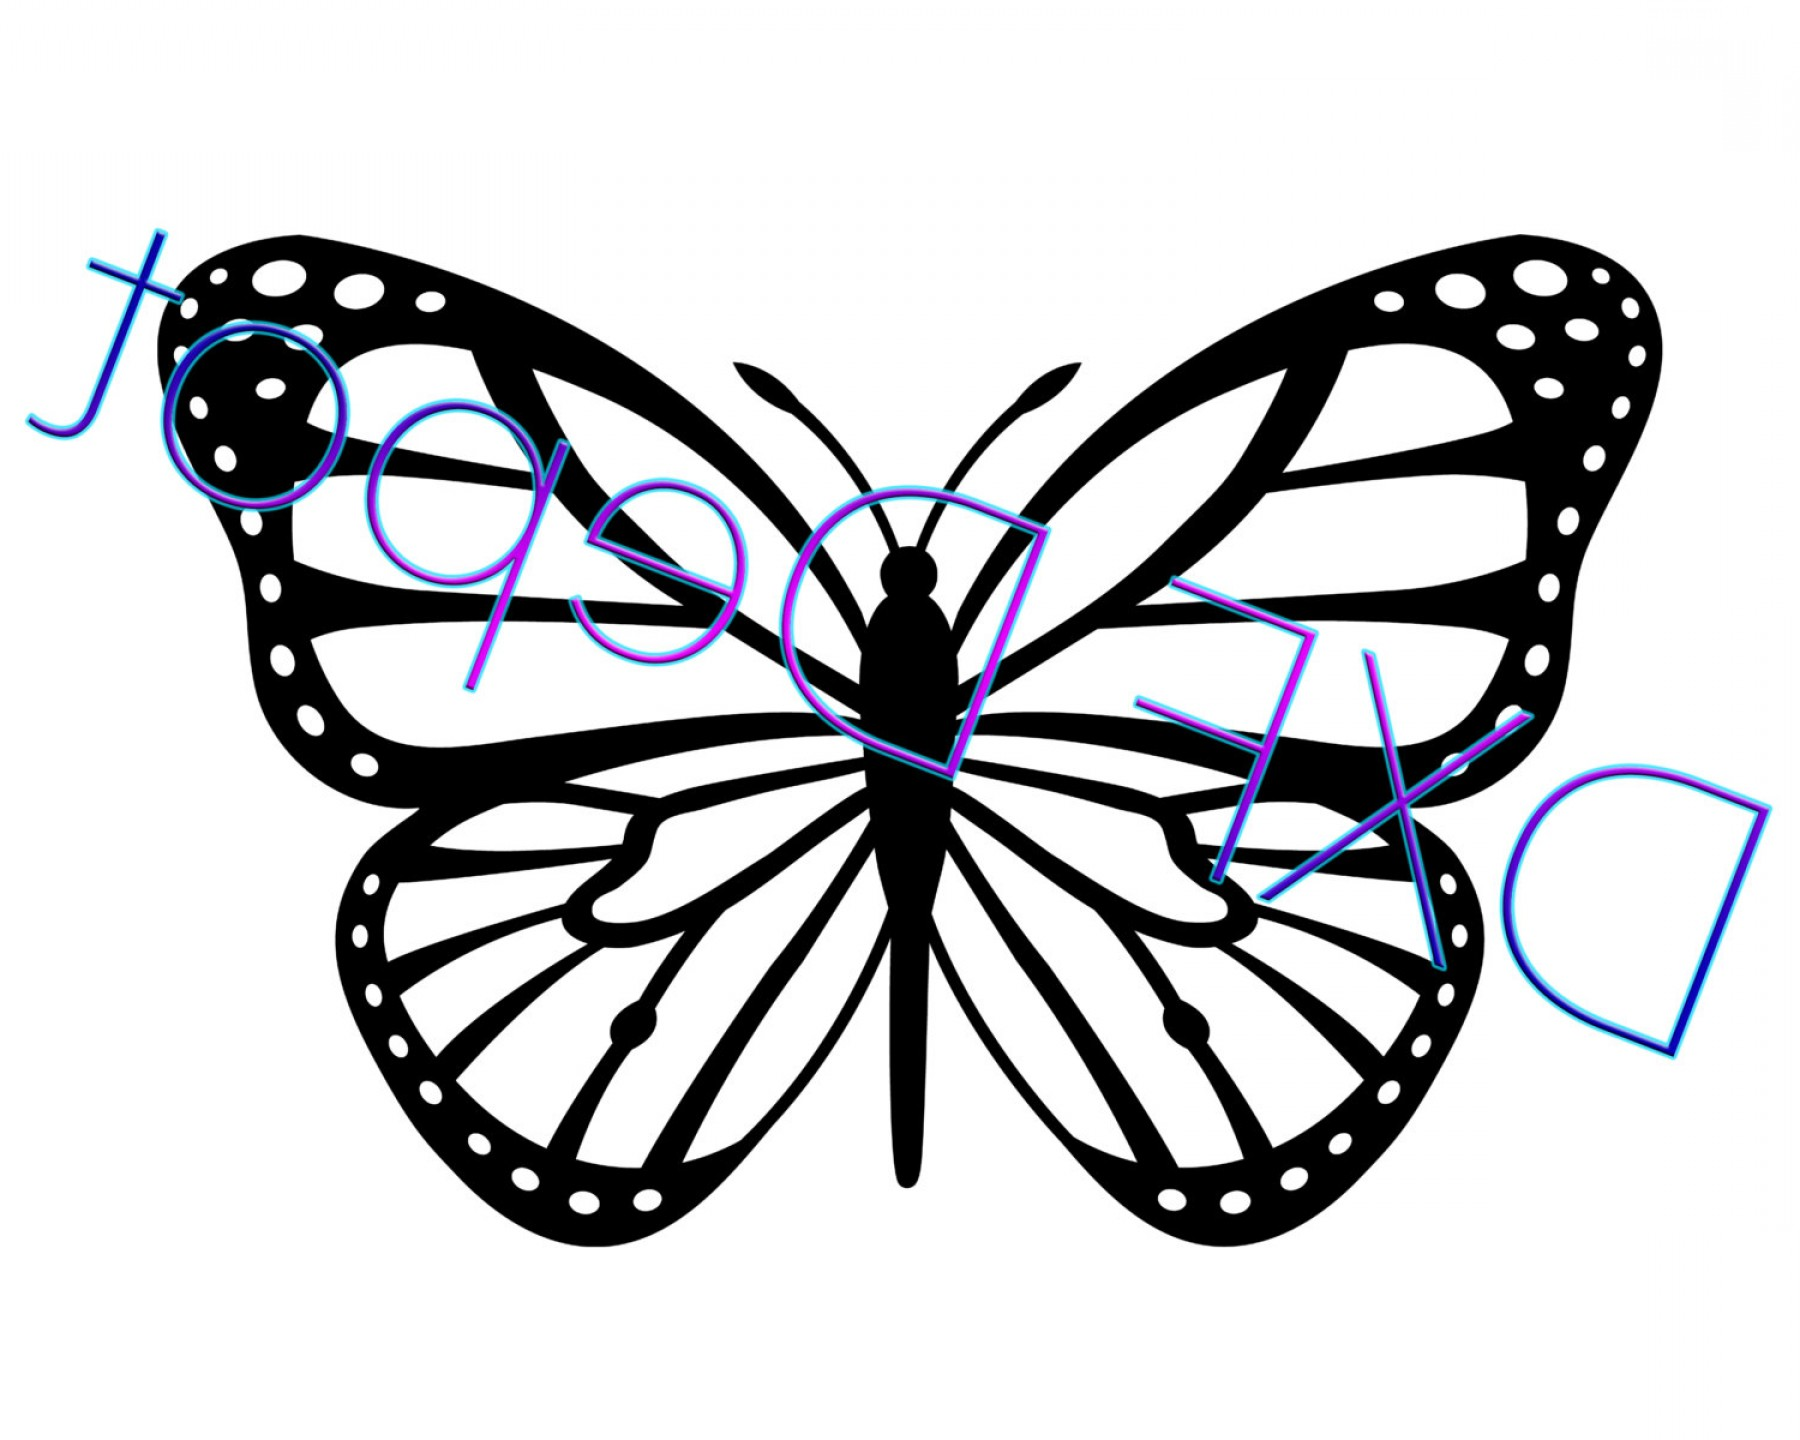 Exclusive Butterfly Dxf Format Cnc Cut F-Exclusive Butterfly Dxf Format Cnc Cut File Vector Layout-9